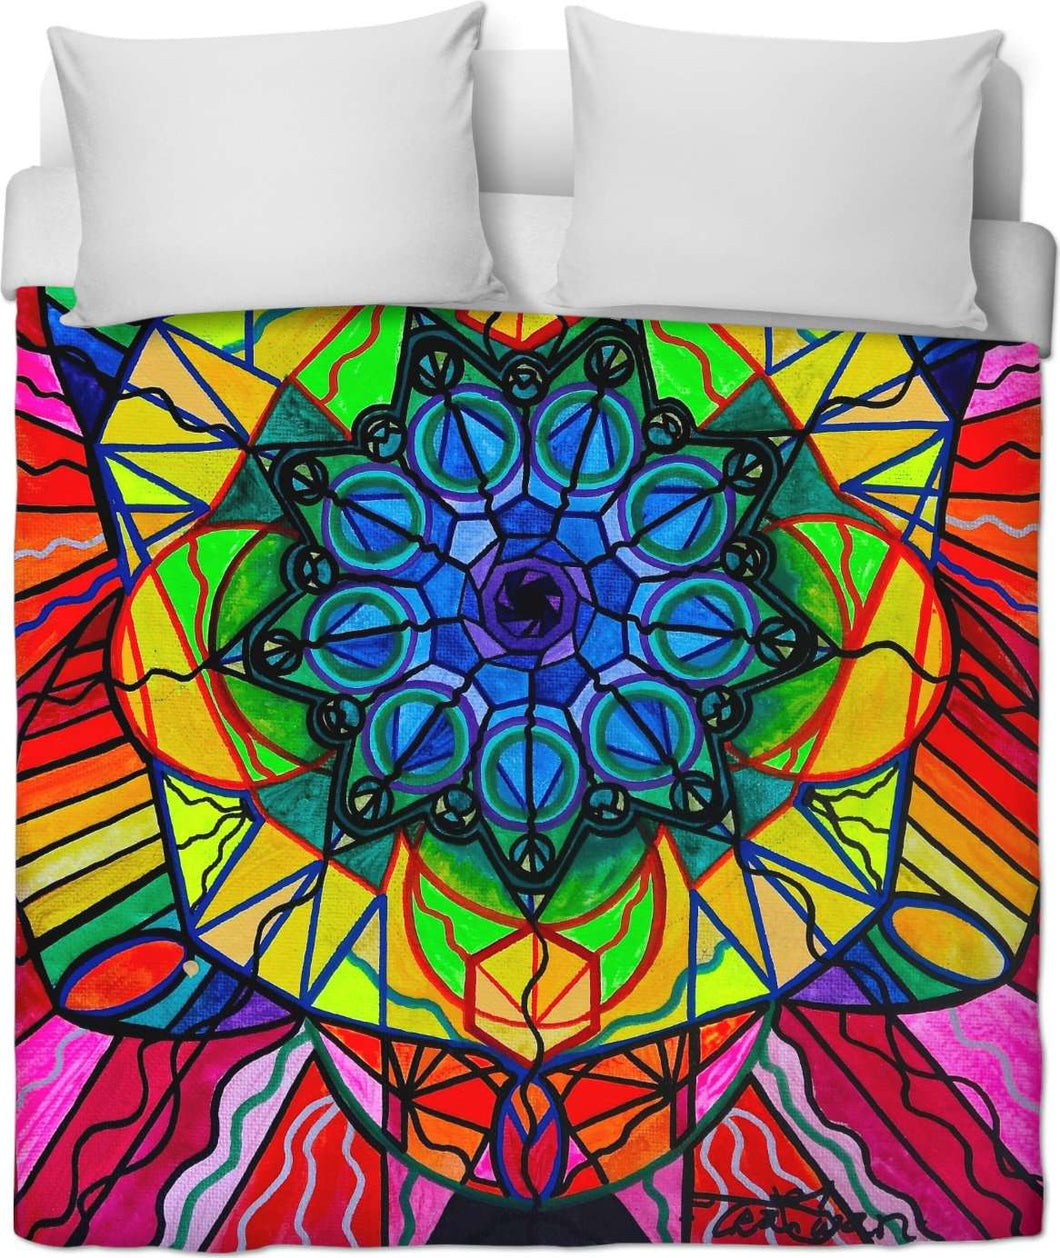 Creativity - Duvet Cover